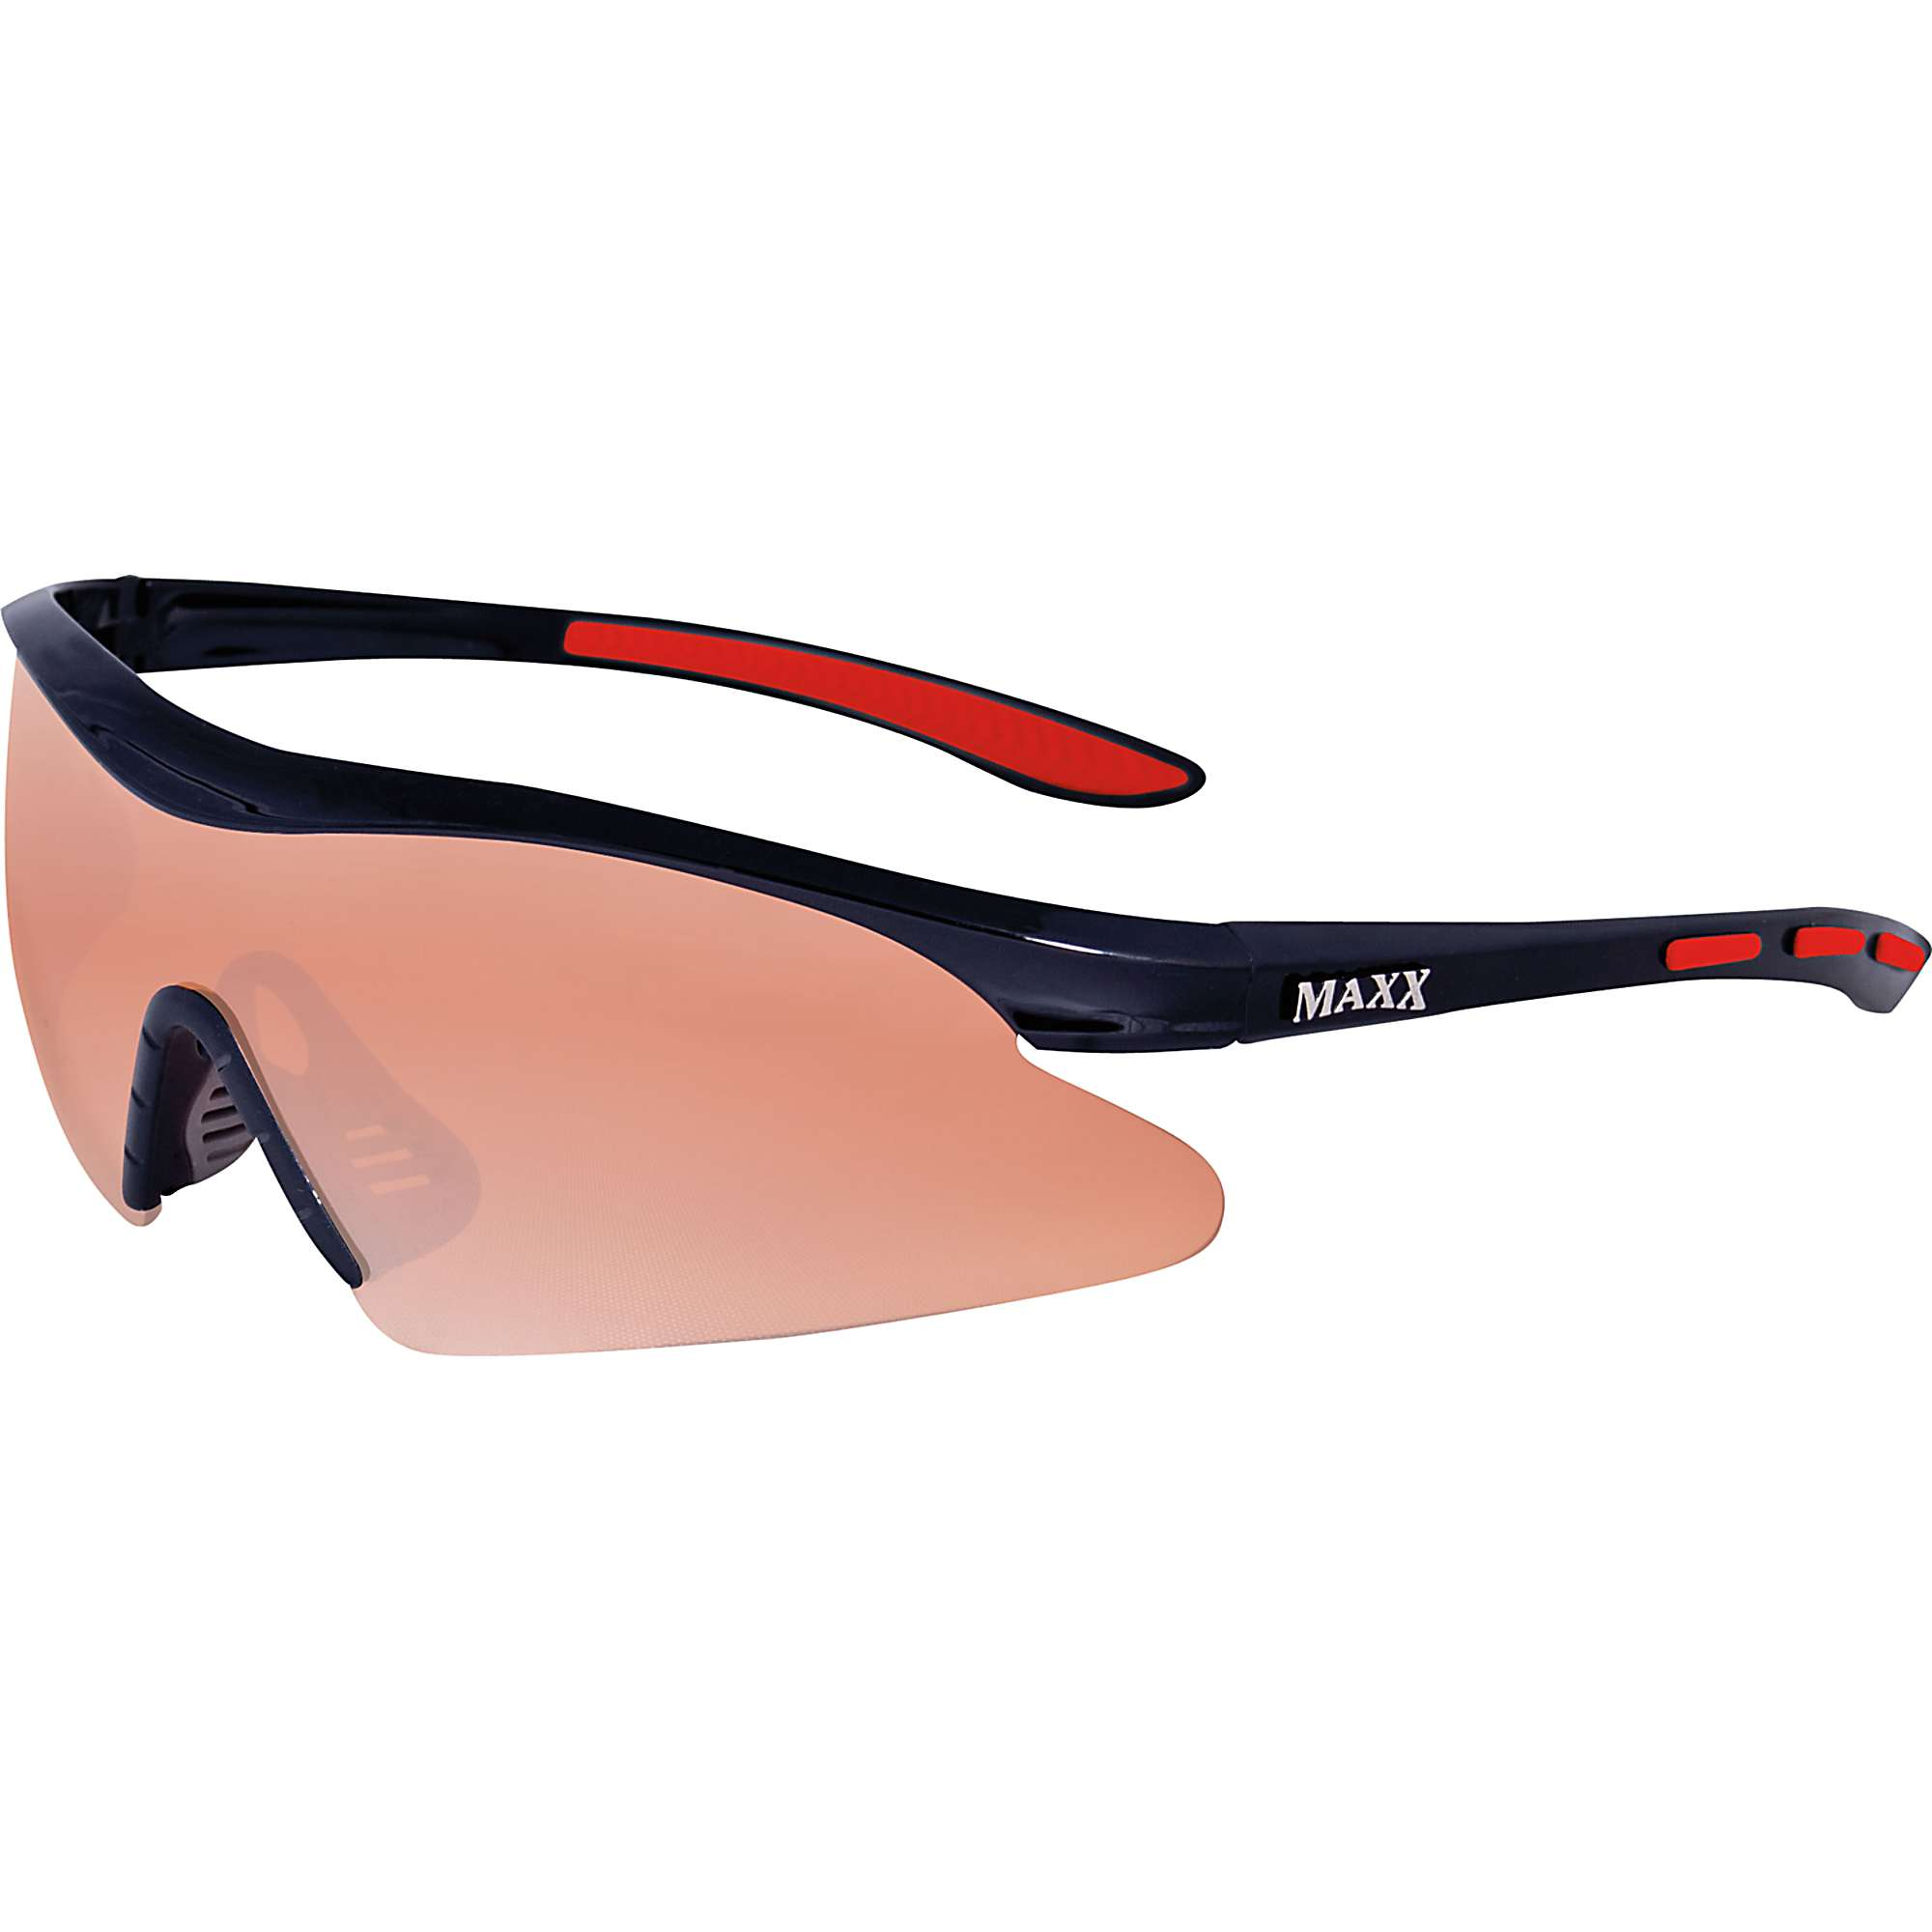 Maxx Hd Sniper Sunglasses